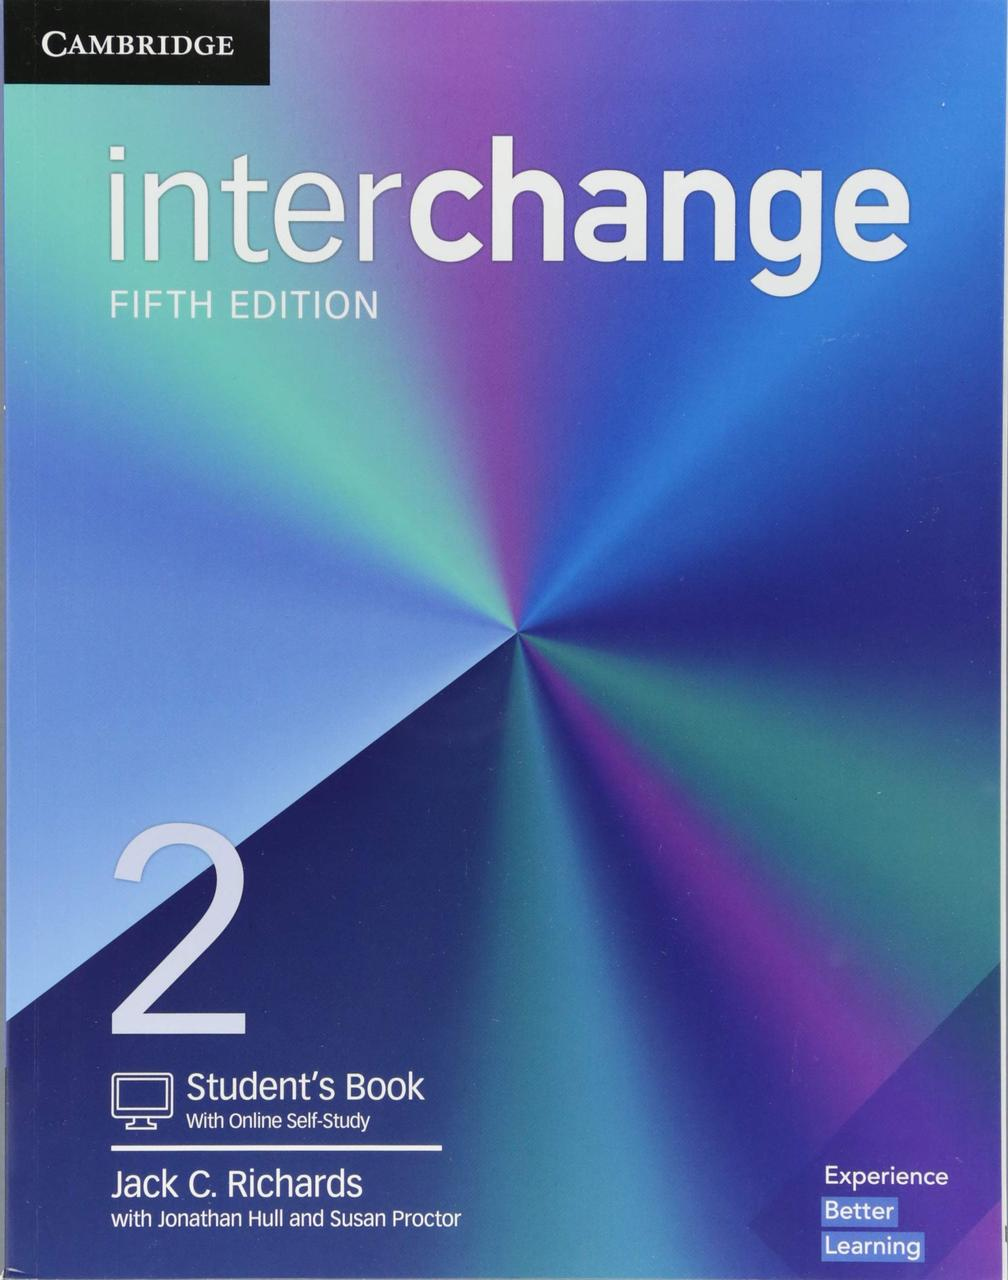 Interchange Level 2 Student's Book with Online Self-Study 5th Edition